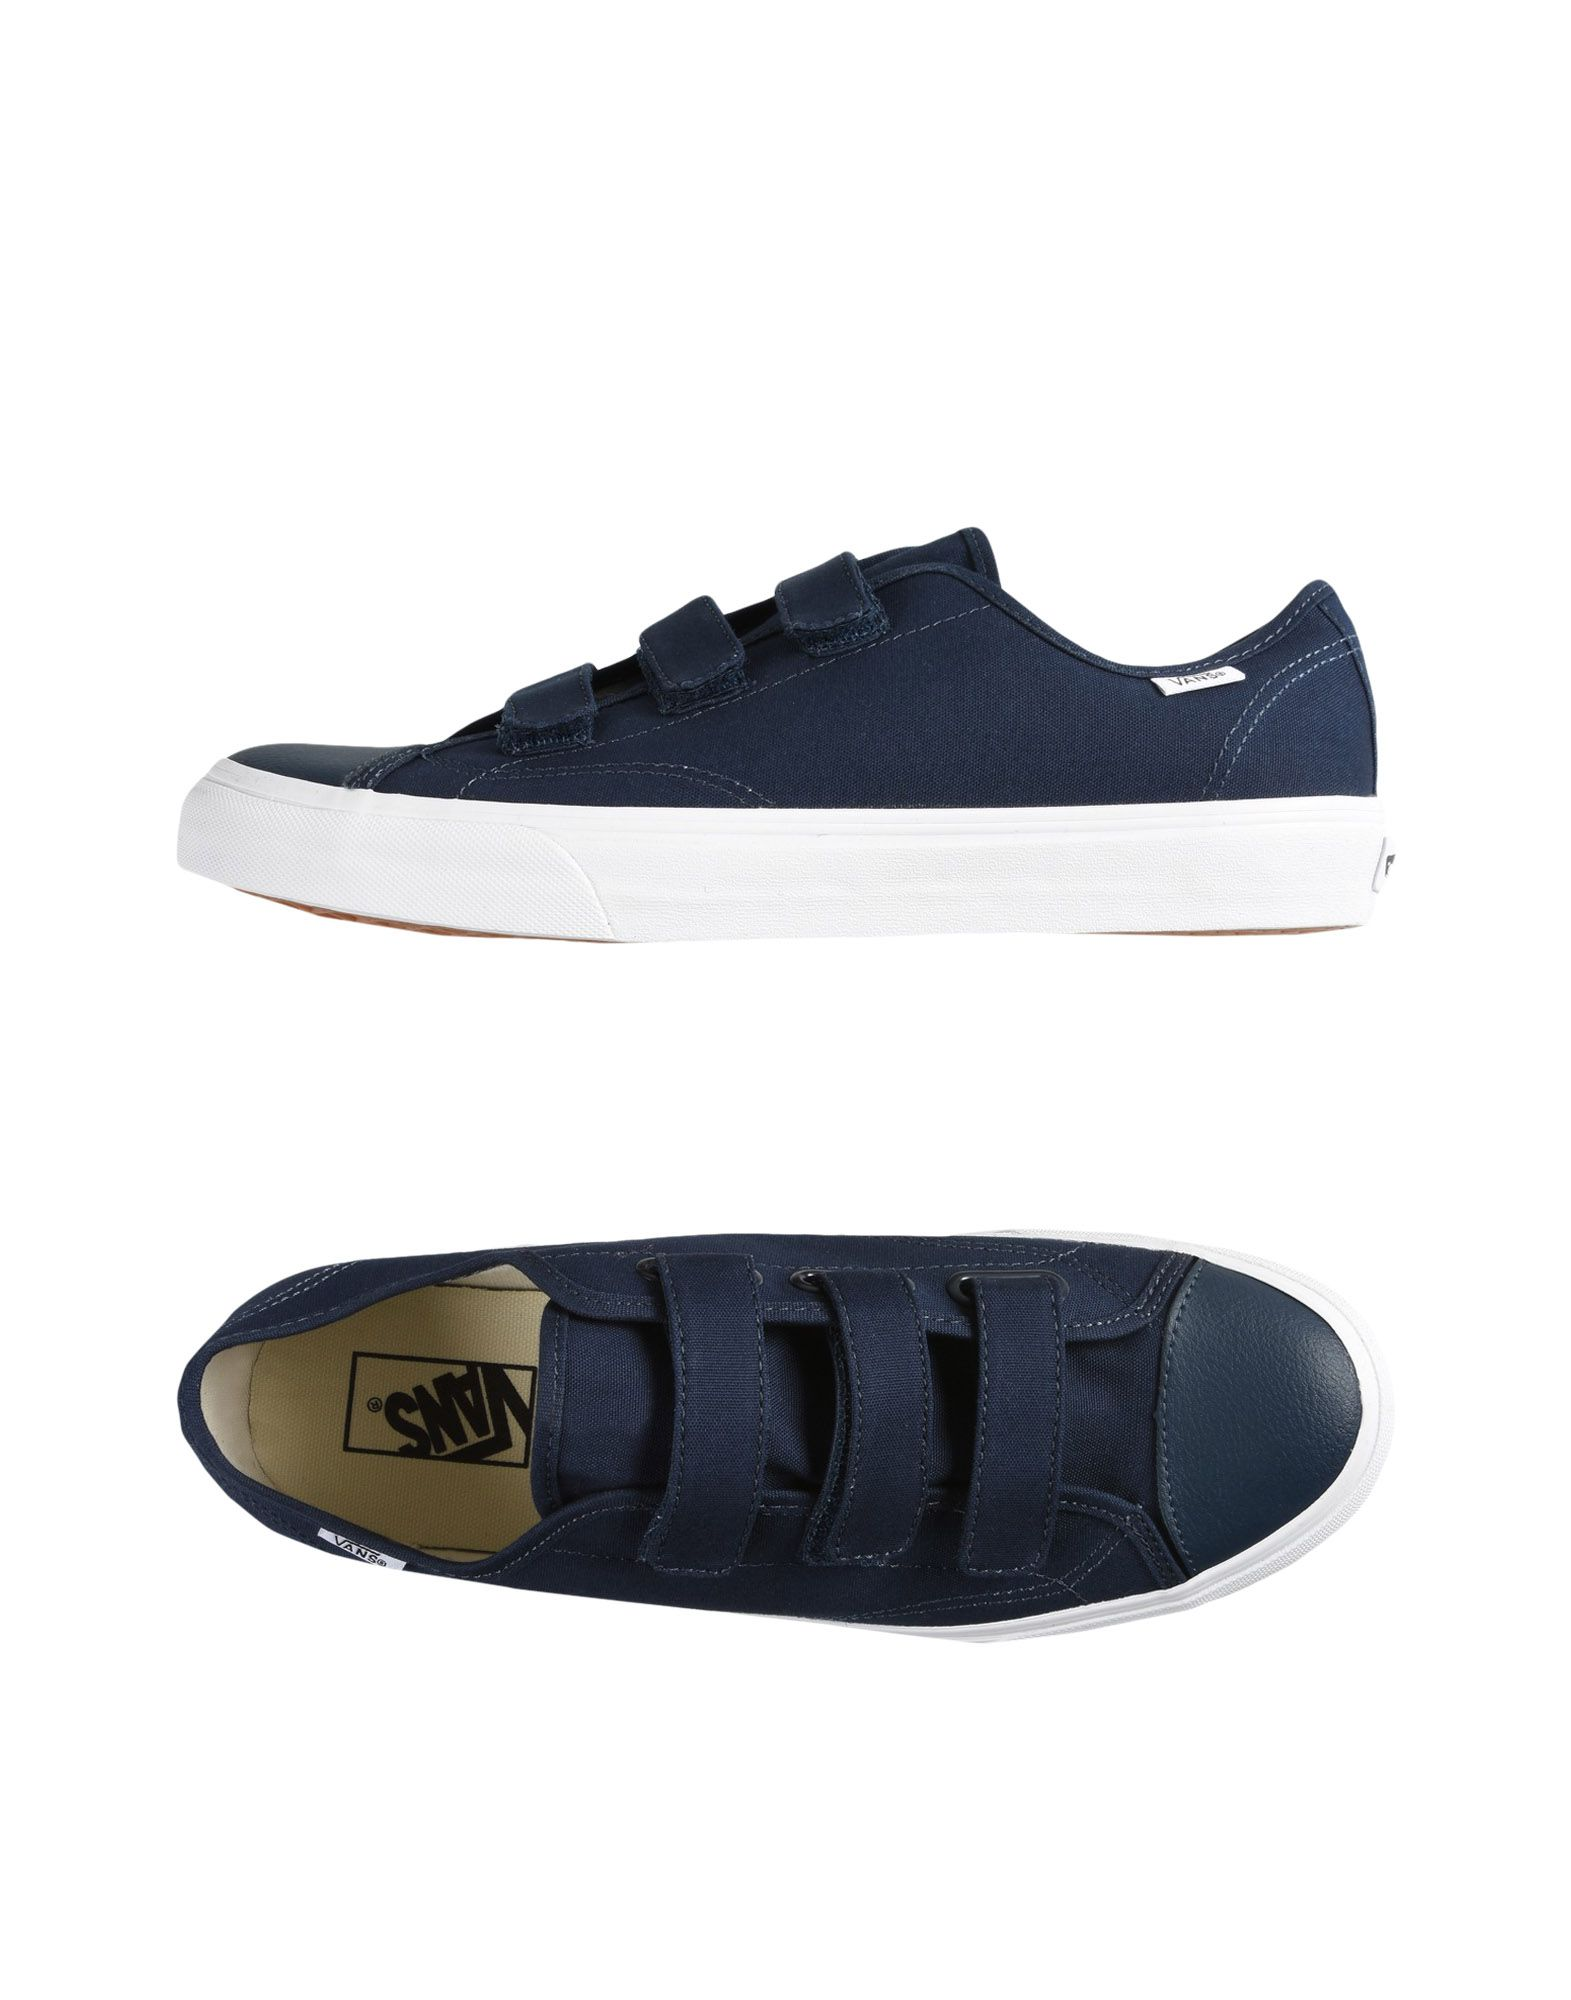 Sneakers Vans Ua Prison Issue - Canvas - Uomo - 11224685CH